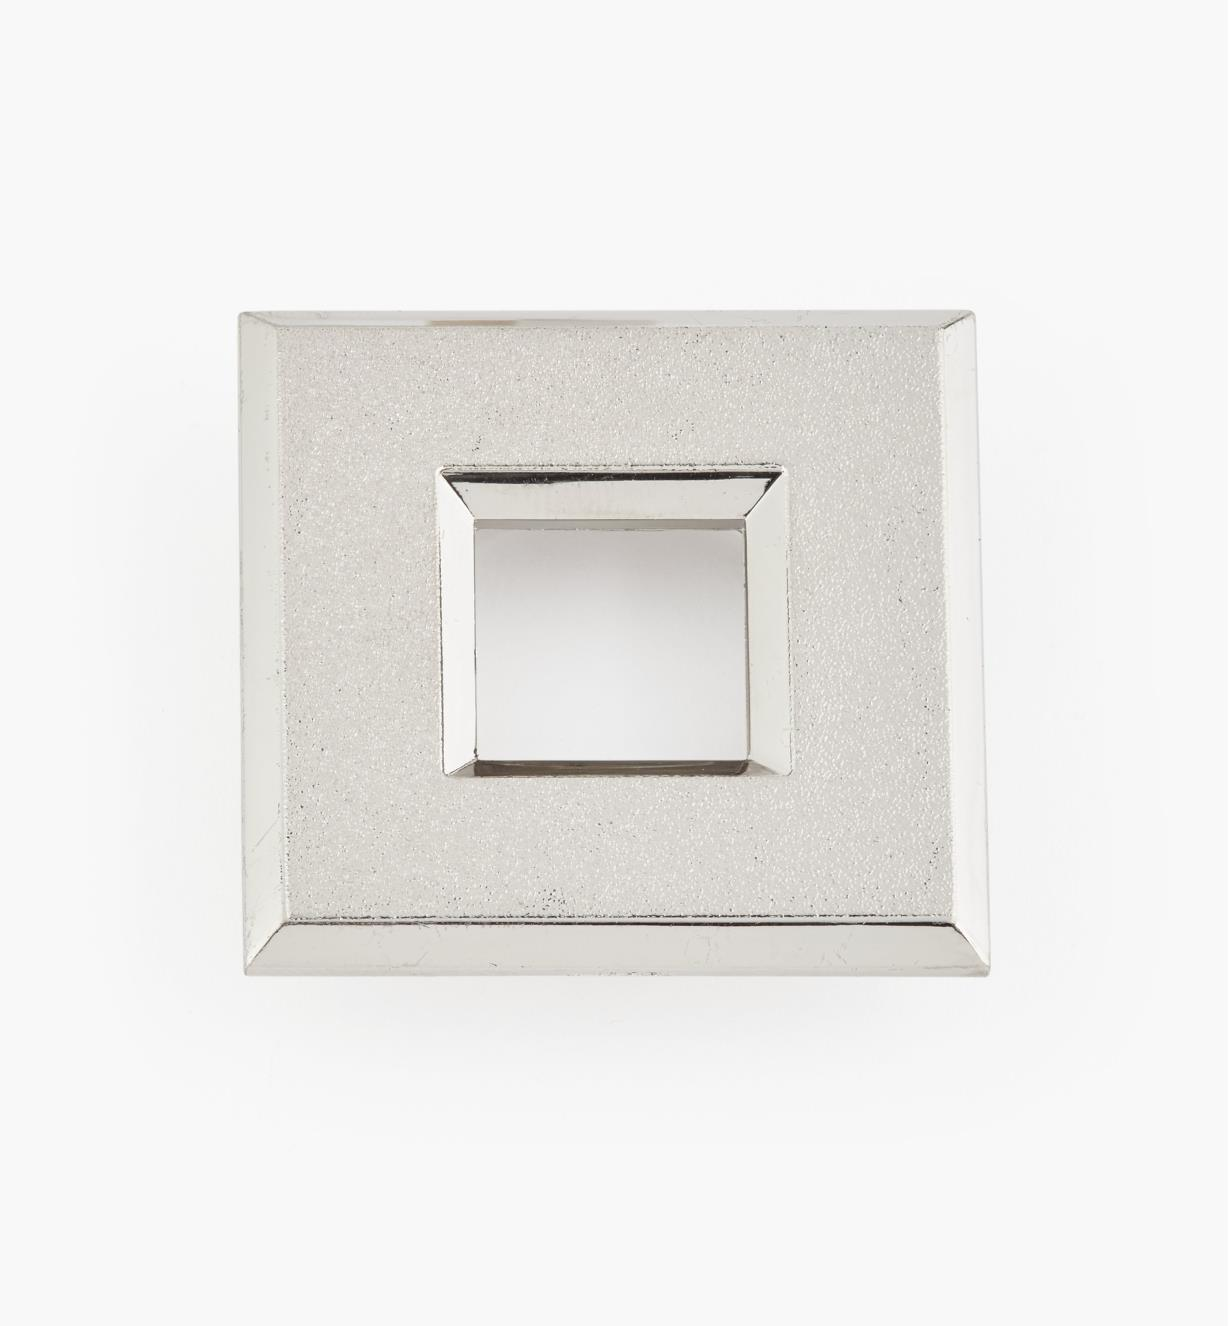 "00U4367 - 1 9/16"" Silver Square Polycarbonate Trim Ring"